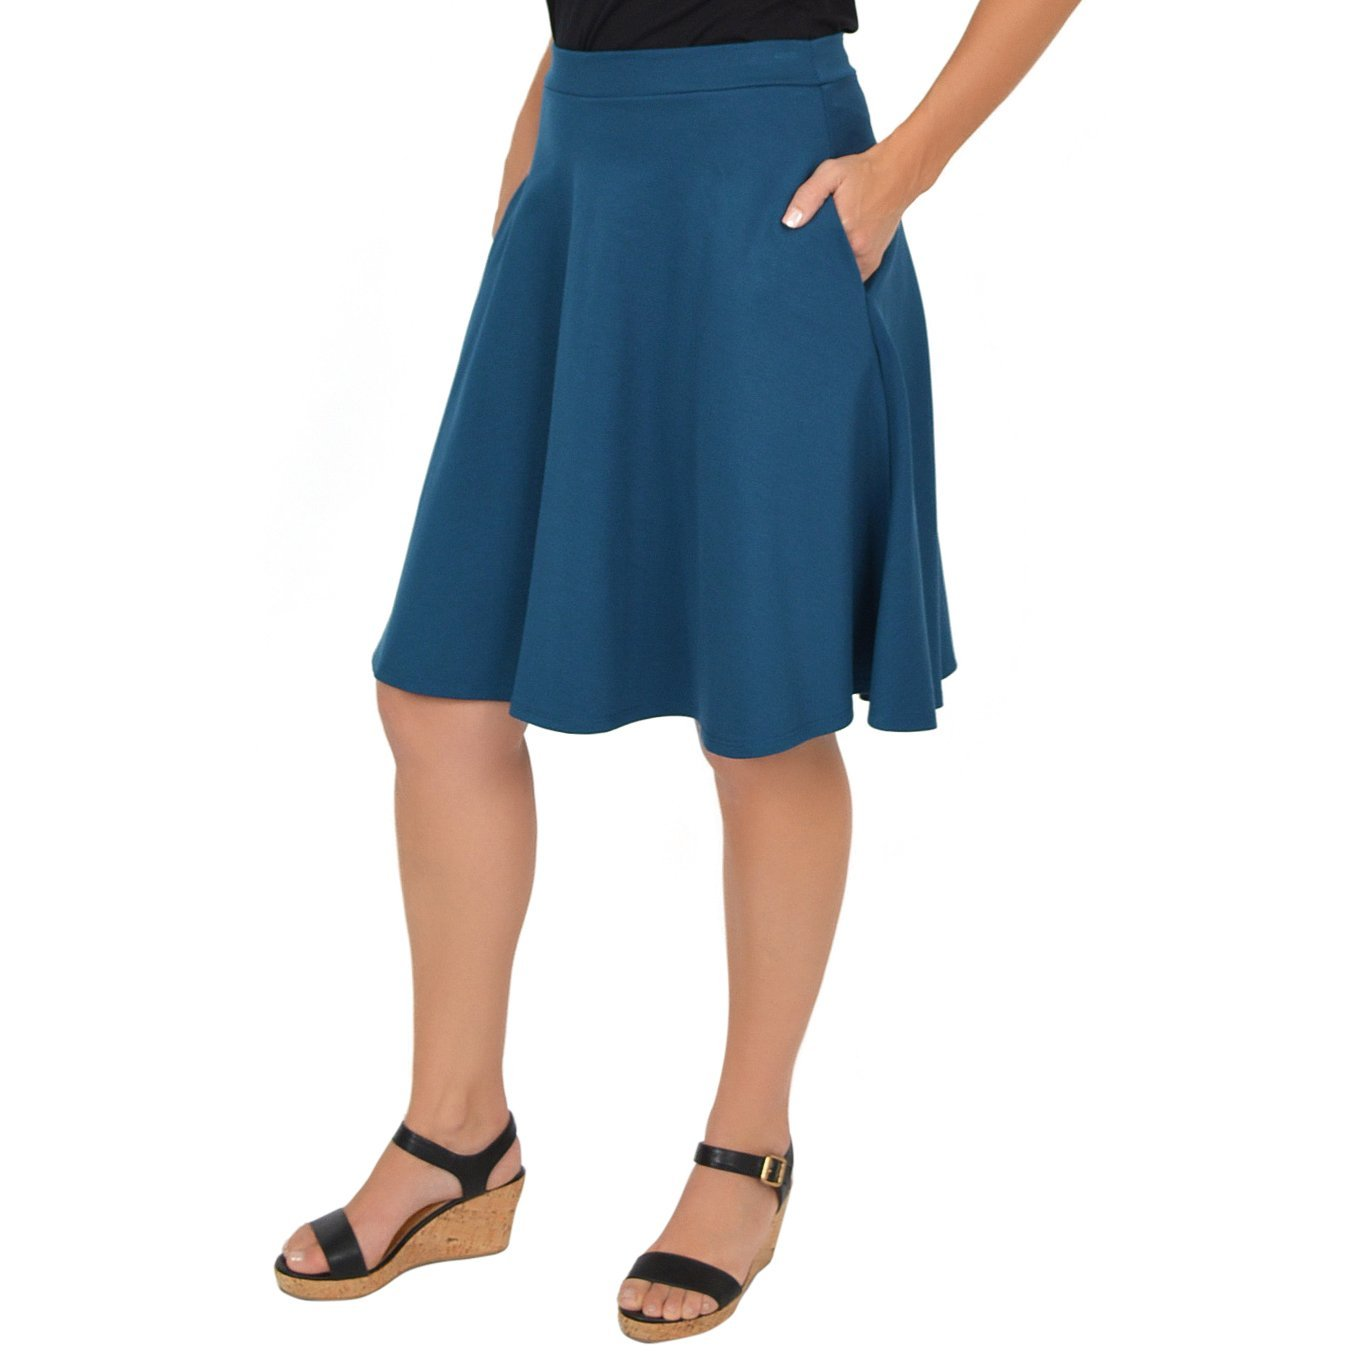 b9b0cab3bd Stretch is Comfort Women's Circle Skirt with Pockets at Amazon Women's  Clothing store: